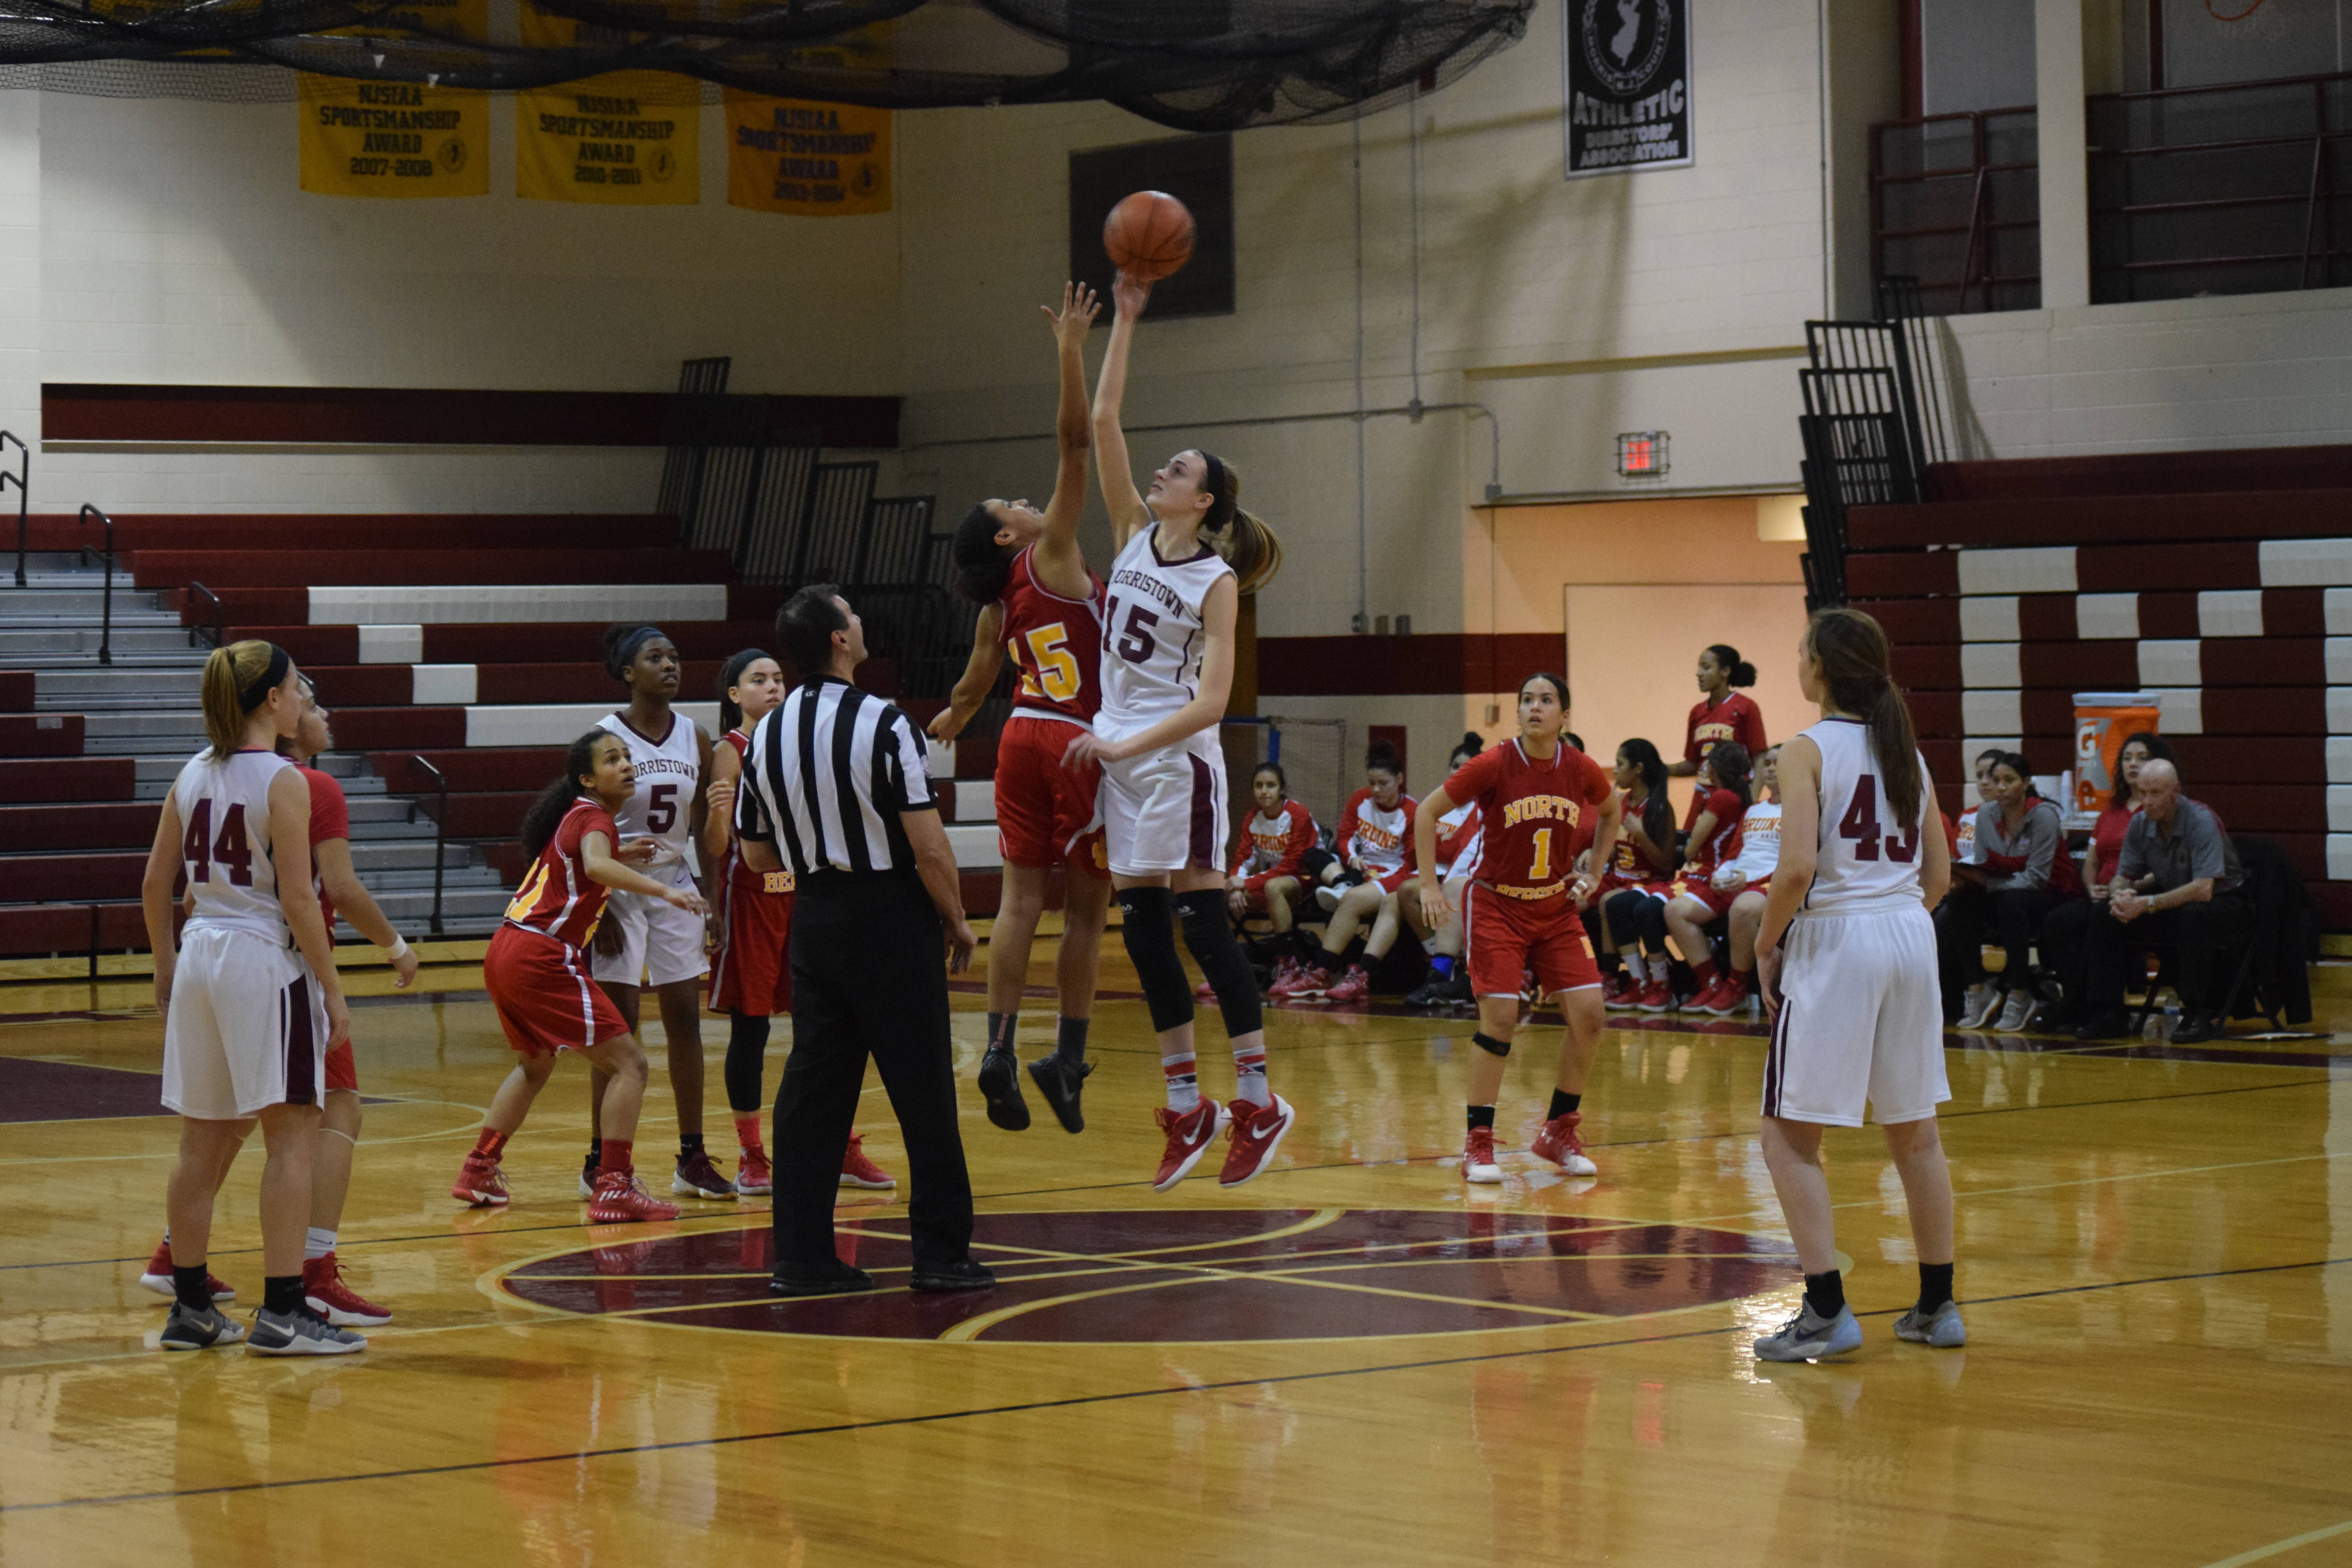 north bergen girls North/west bergen /passaic girl's the first league meeting of the north/west bergen /passaic please bring a check payable to nwbp girls basketball league.